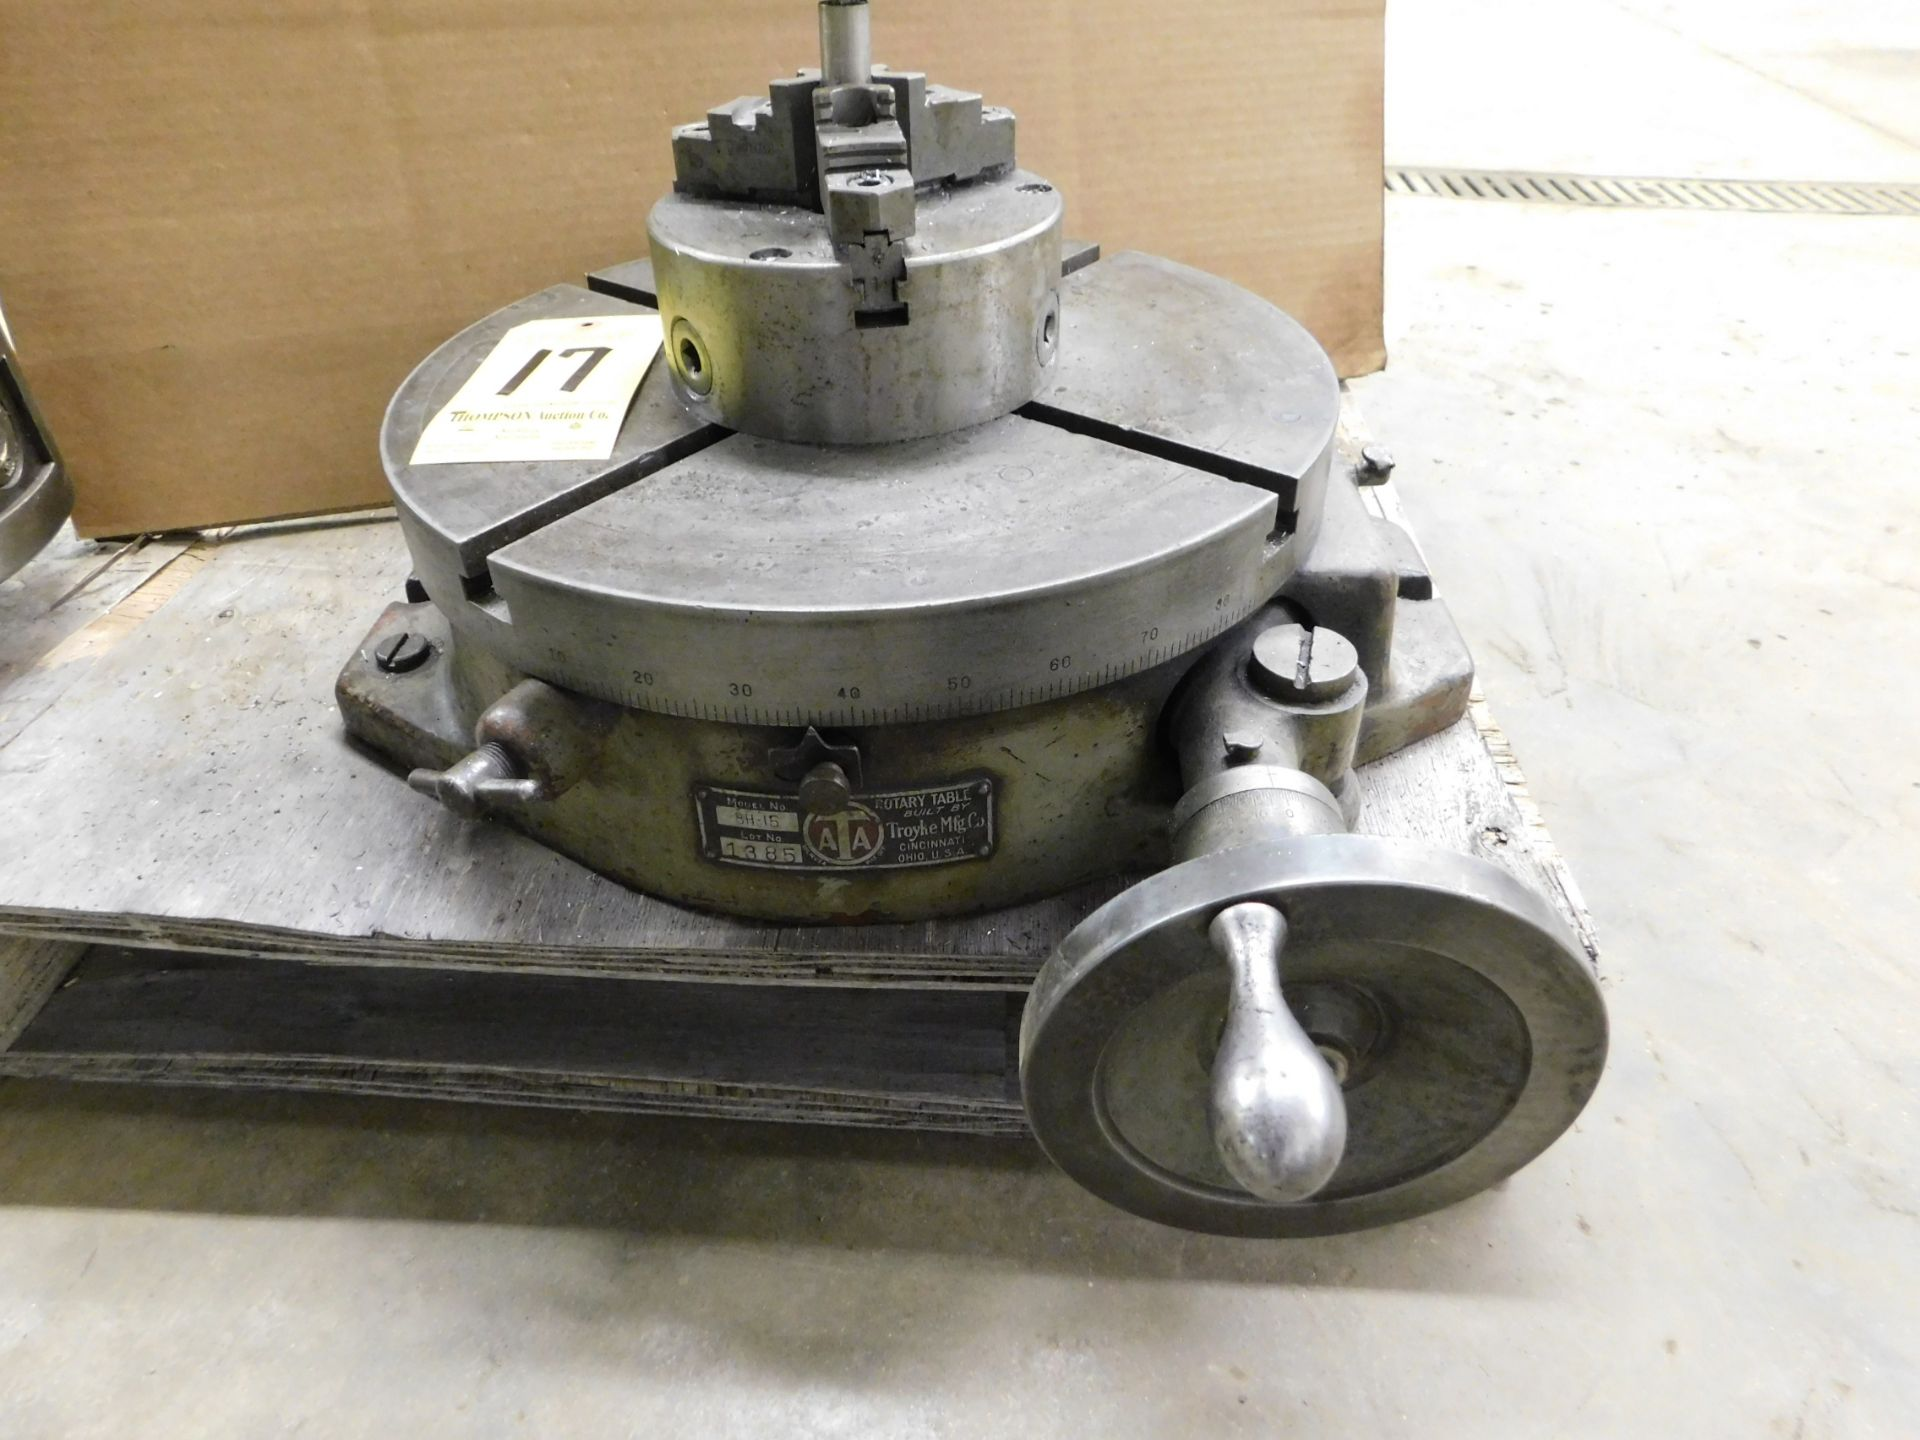 """Lot 17 - Troyke BH-15 15"""" Rotary Table with 6"""" 3-Jaw Chuck, Lot Location: 301 Poor Dr., Warsaw, IN, 46580"""